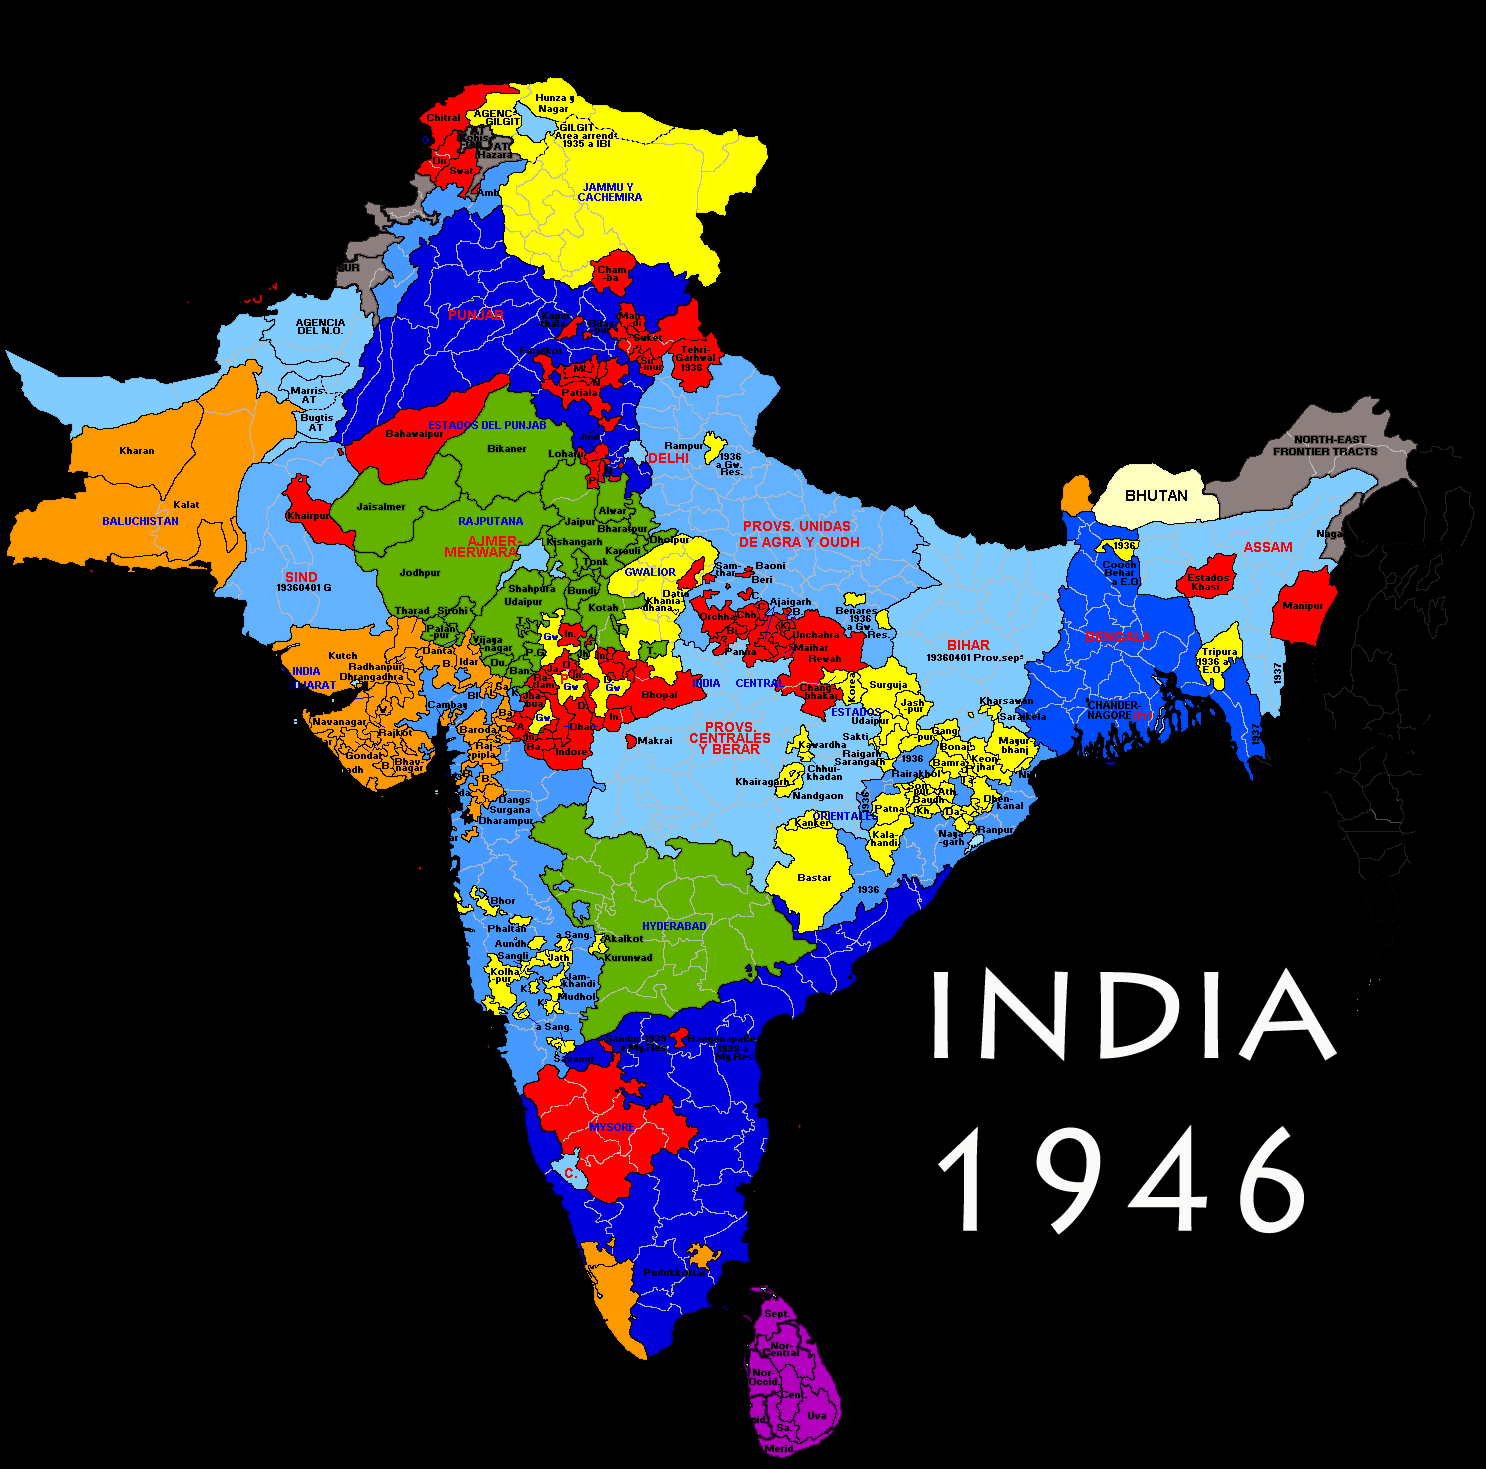 HIS 314 India Princely States Map on india taj mahal, india bombay, india independence movement, india punjab, india delhi, india harappan civilization, india british raj, india biggest cities, india thar desert, india map pre-1947, india economy,